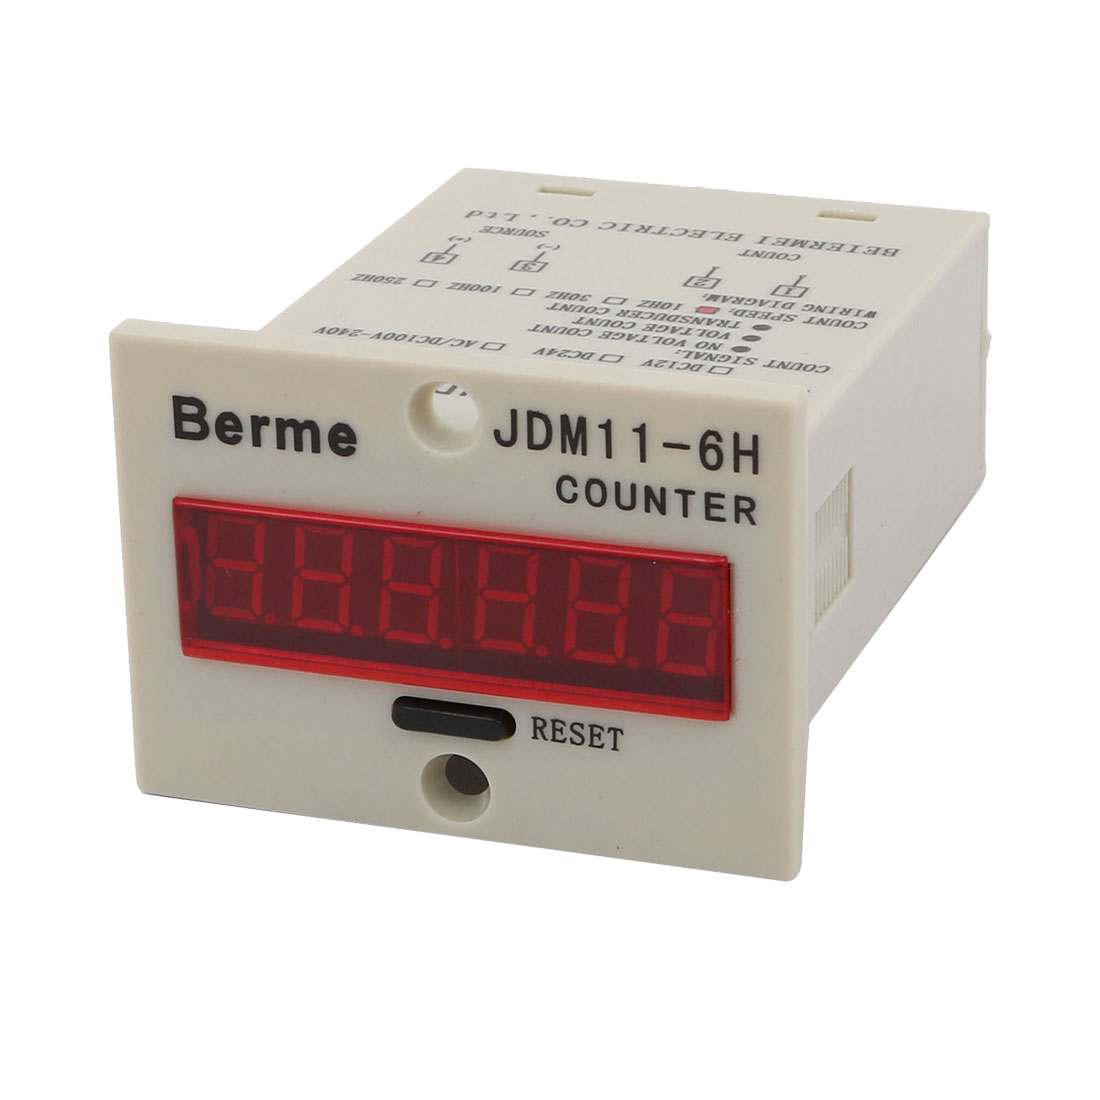 JDM11-6H Panel Mounted AC220V 10Hz Resettable Electronic Counter Digital Display